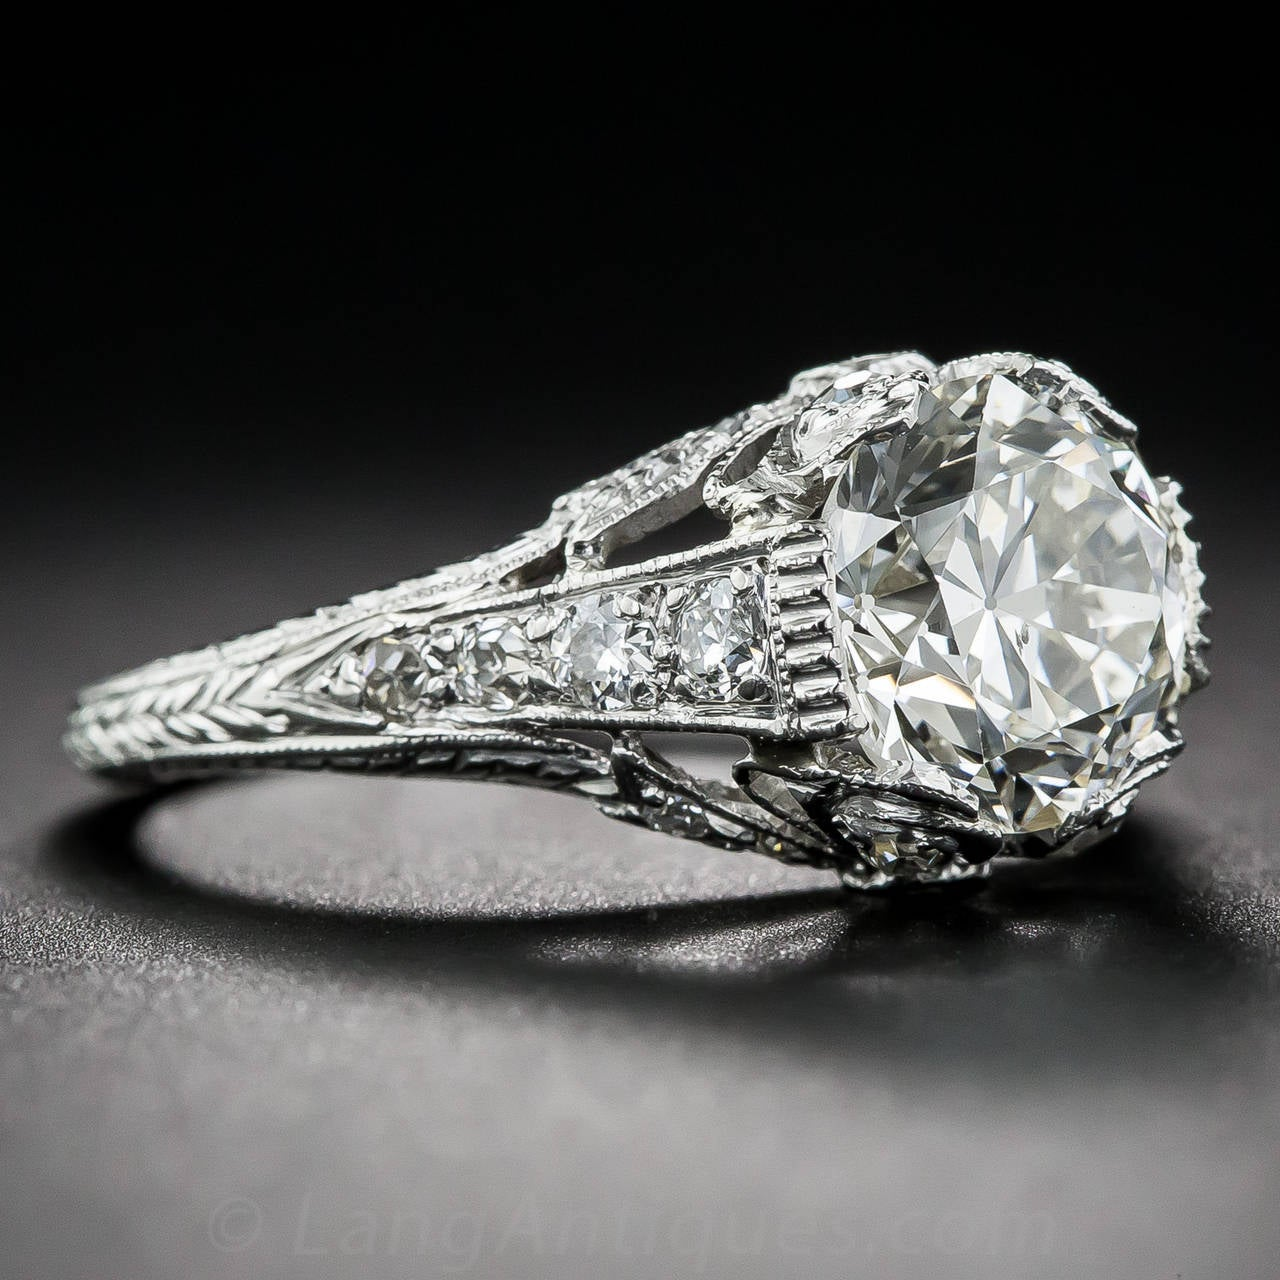 Edwardian GIA Cert 2.09 Carat Diamond Platinum Ring In Excellent Condition For Sale In San Francisco, CA